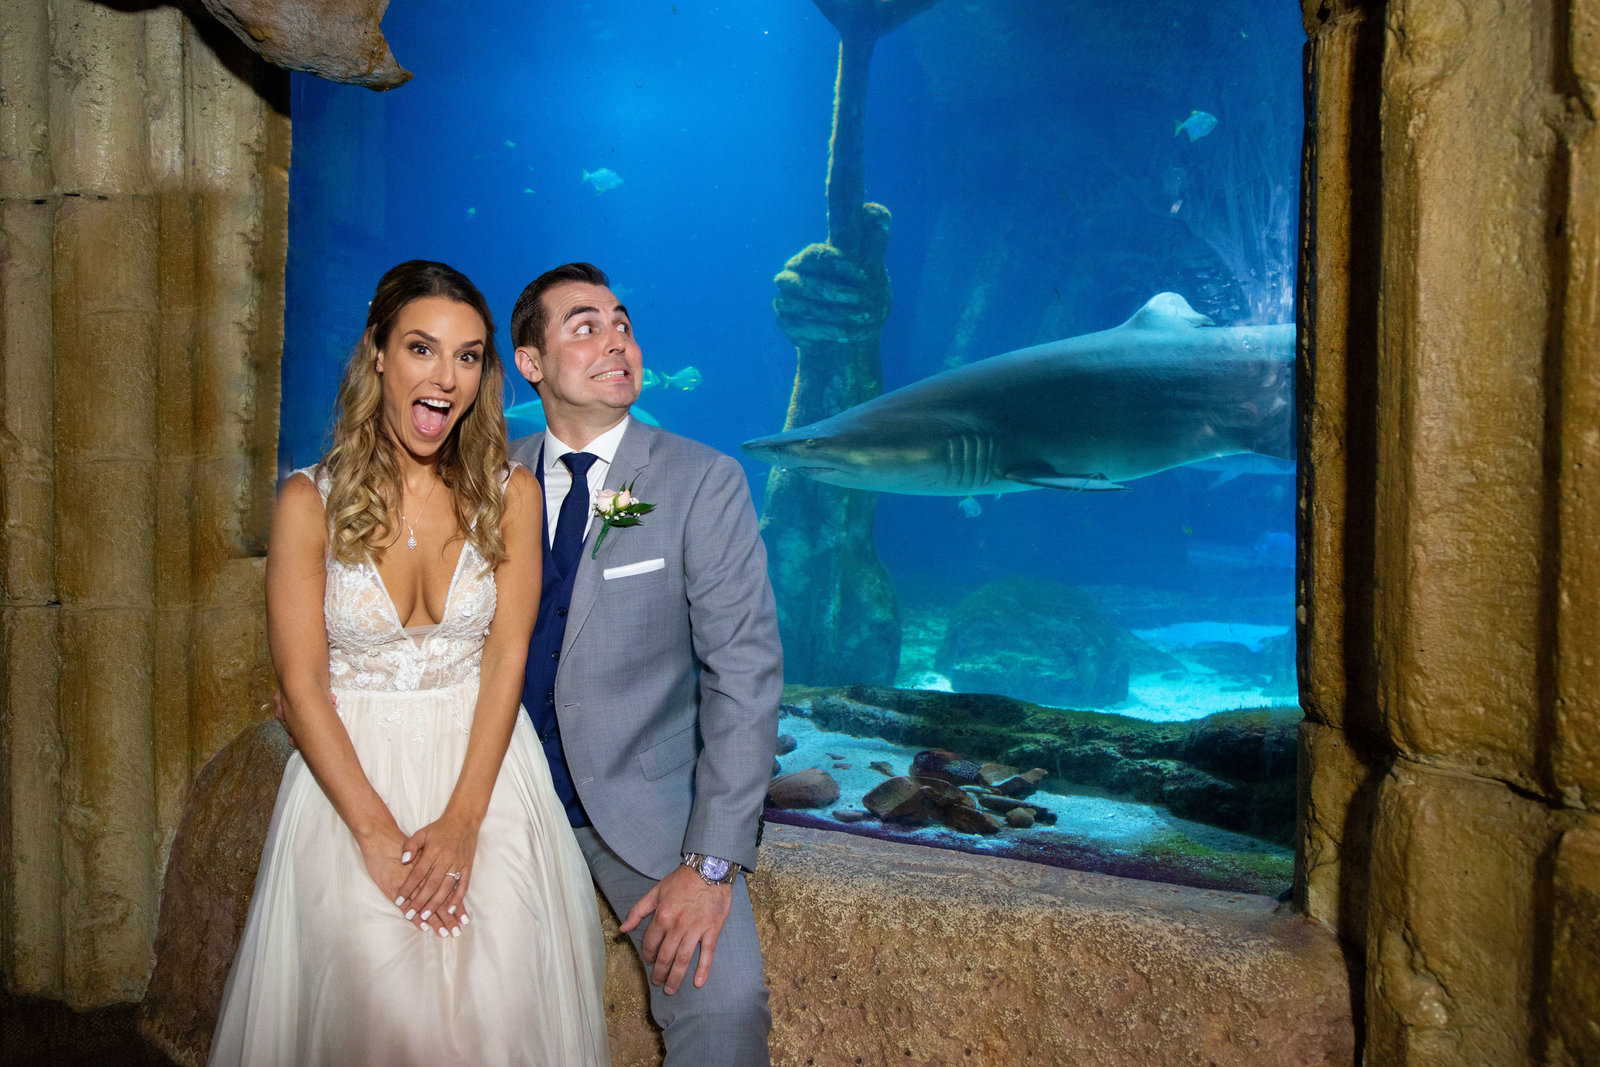 Bride and groom in front of sharks at Atlantis Banquet and Events